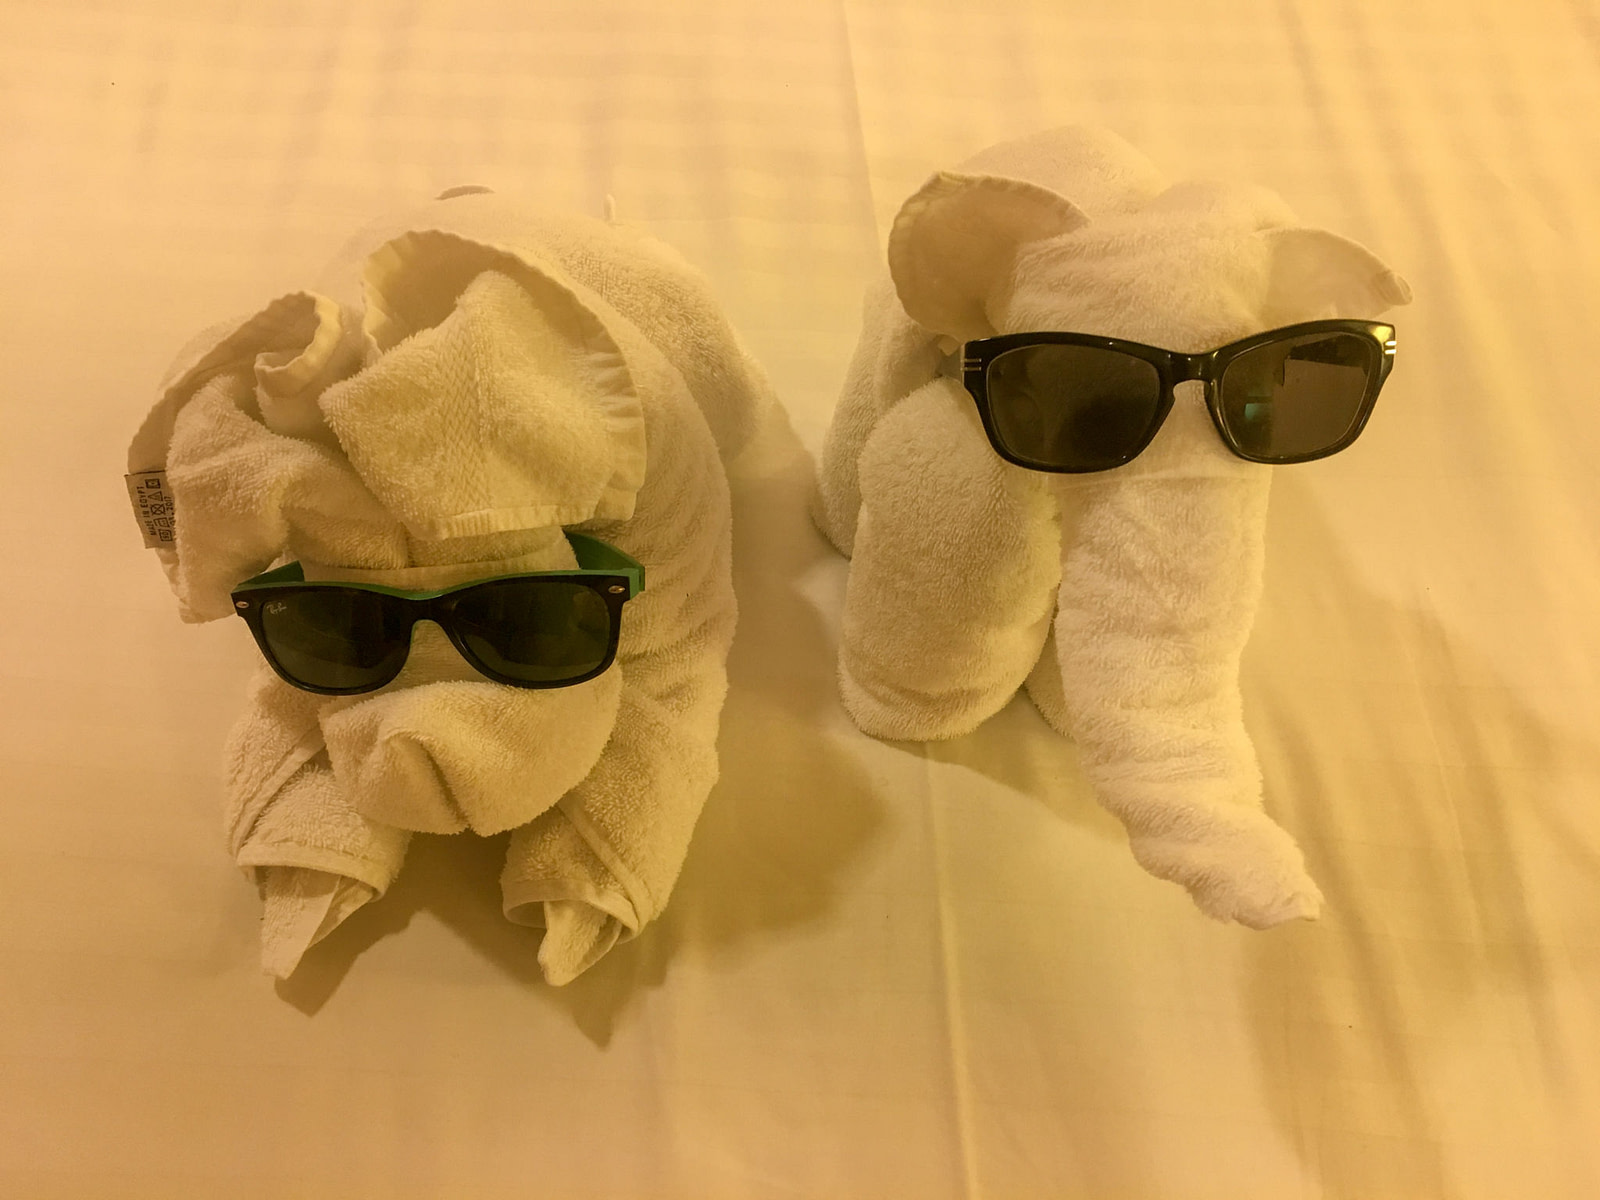 two animals made out of towels wearing sunglasses